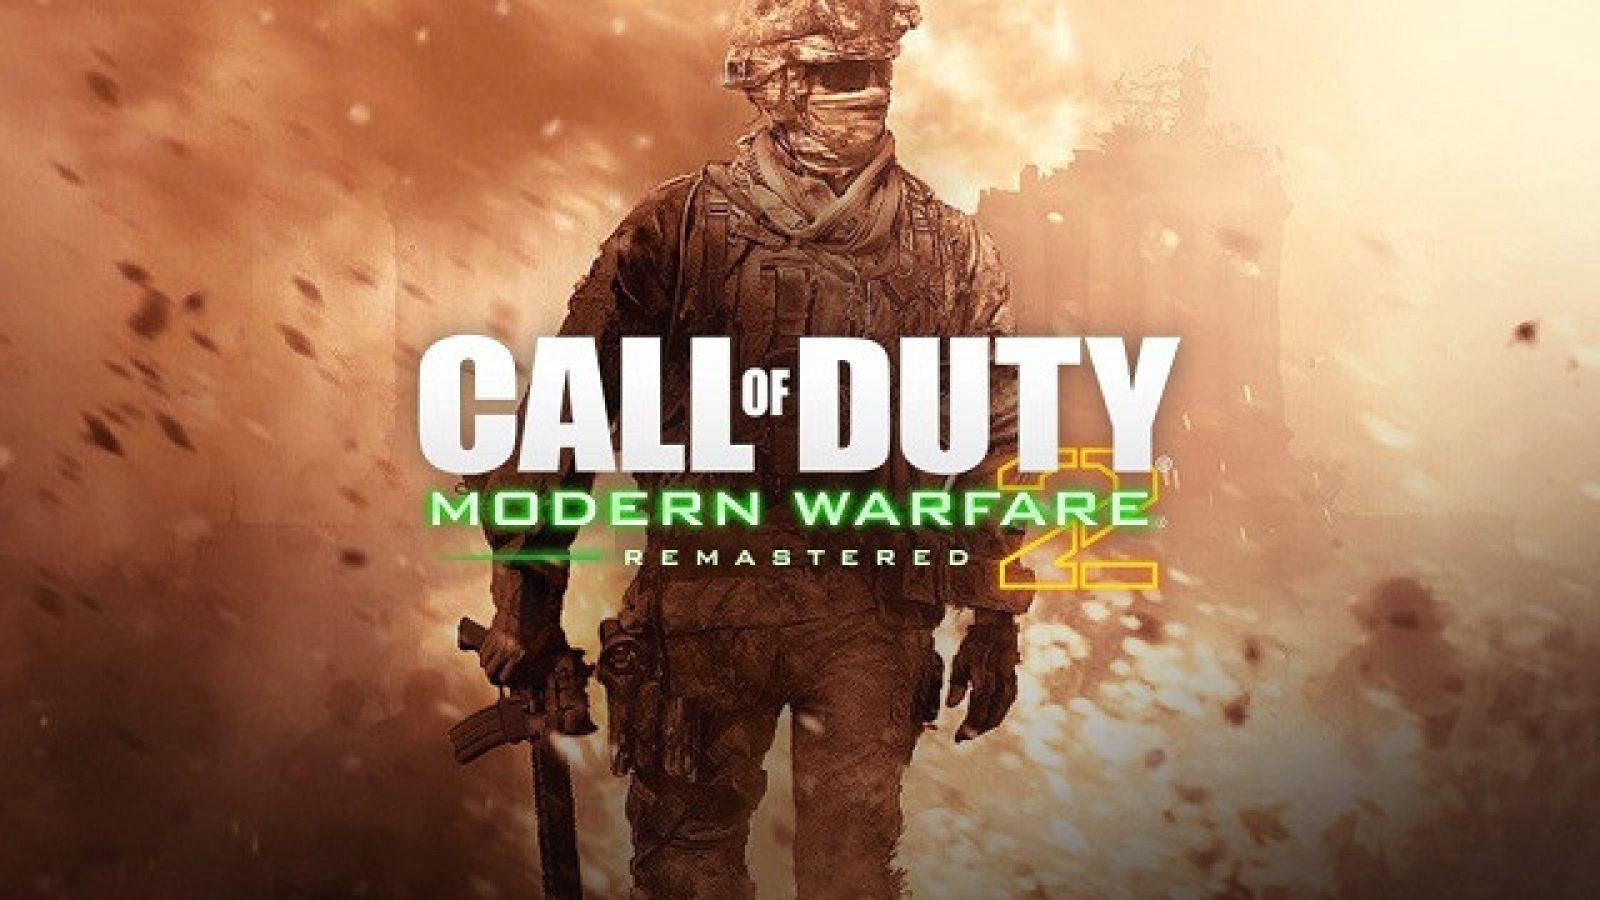 Download Call of Duty: Modern Warfare 2 – Campaign Remastered (v1.1.2.1279292, MULTi14) [FitGirl Repack]